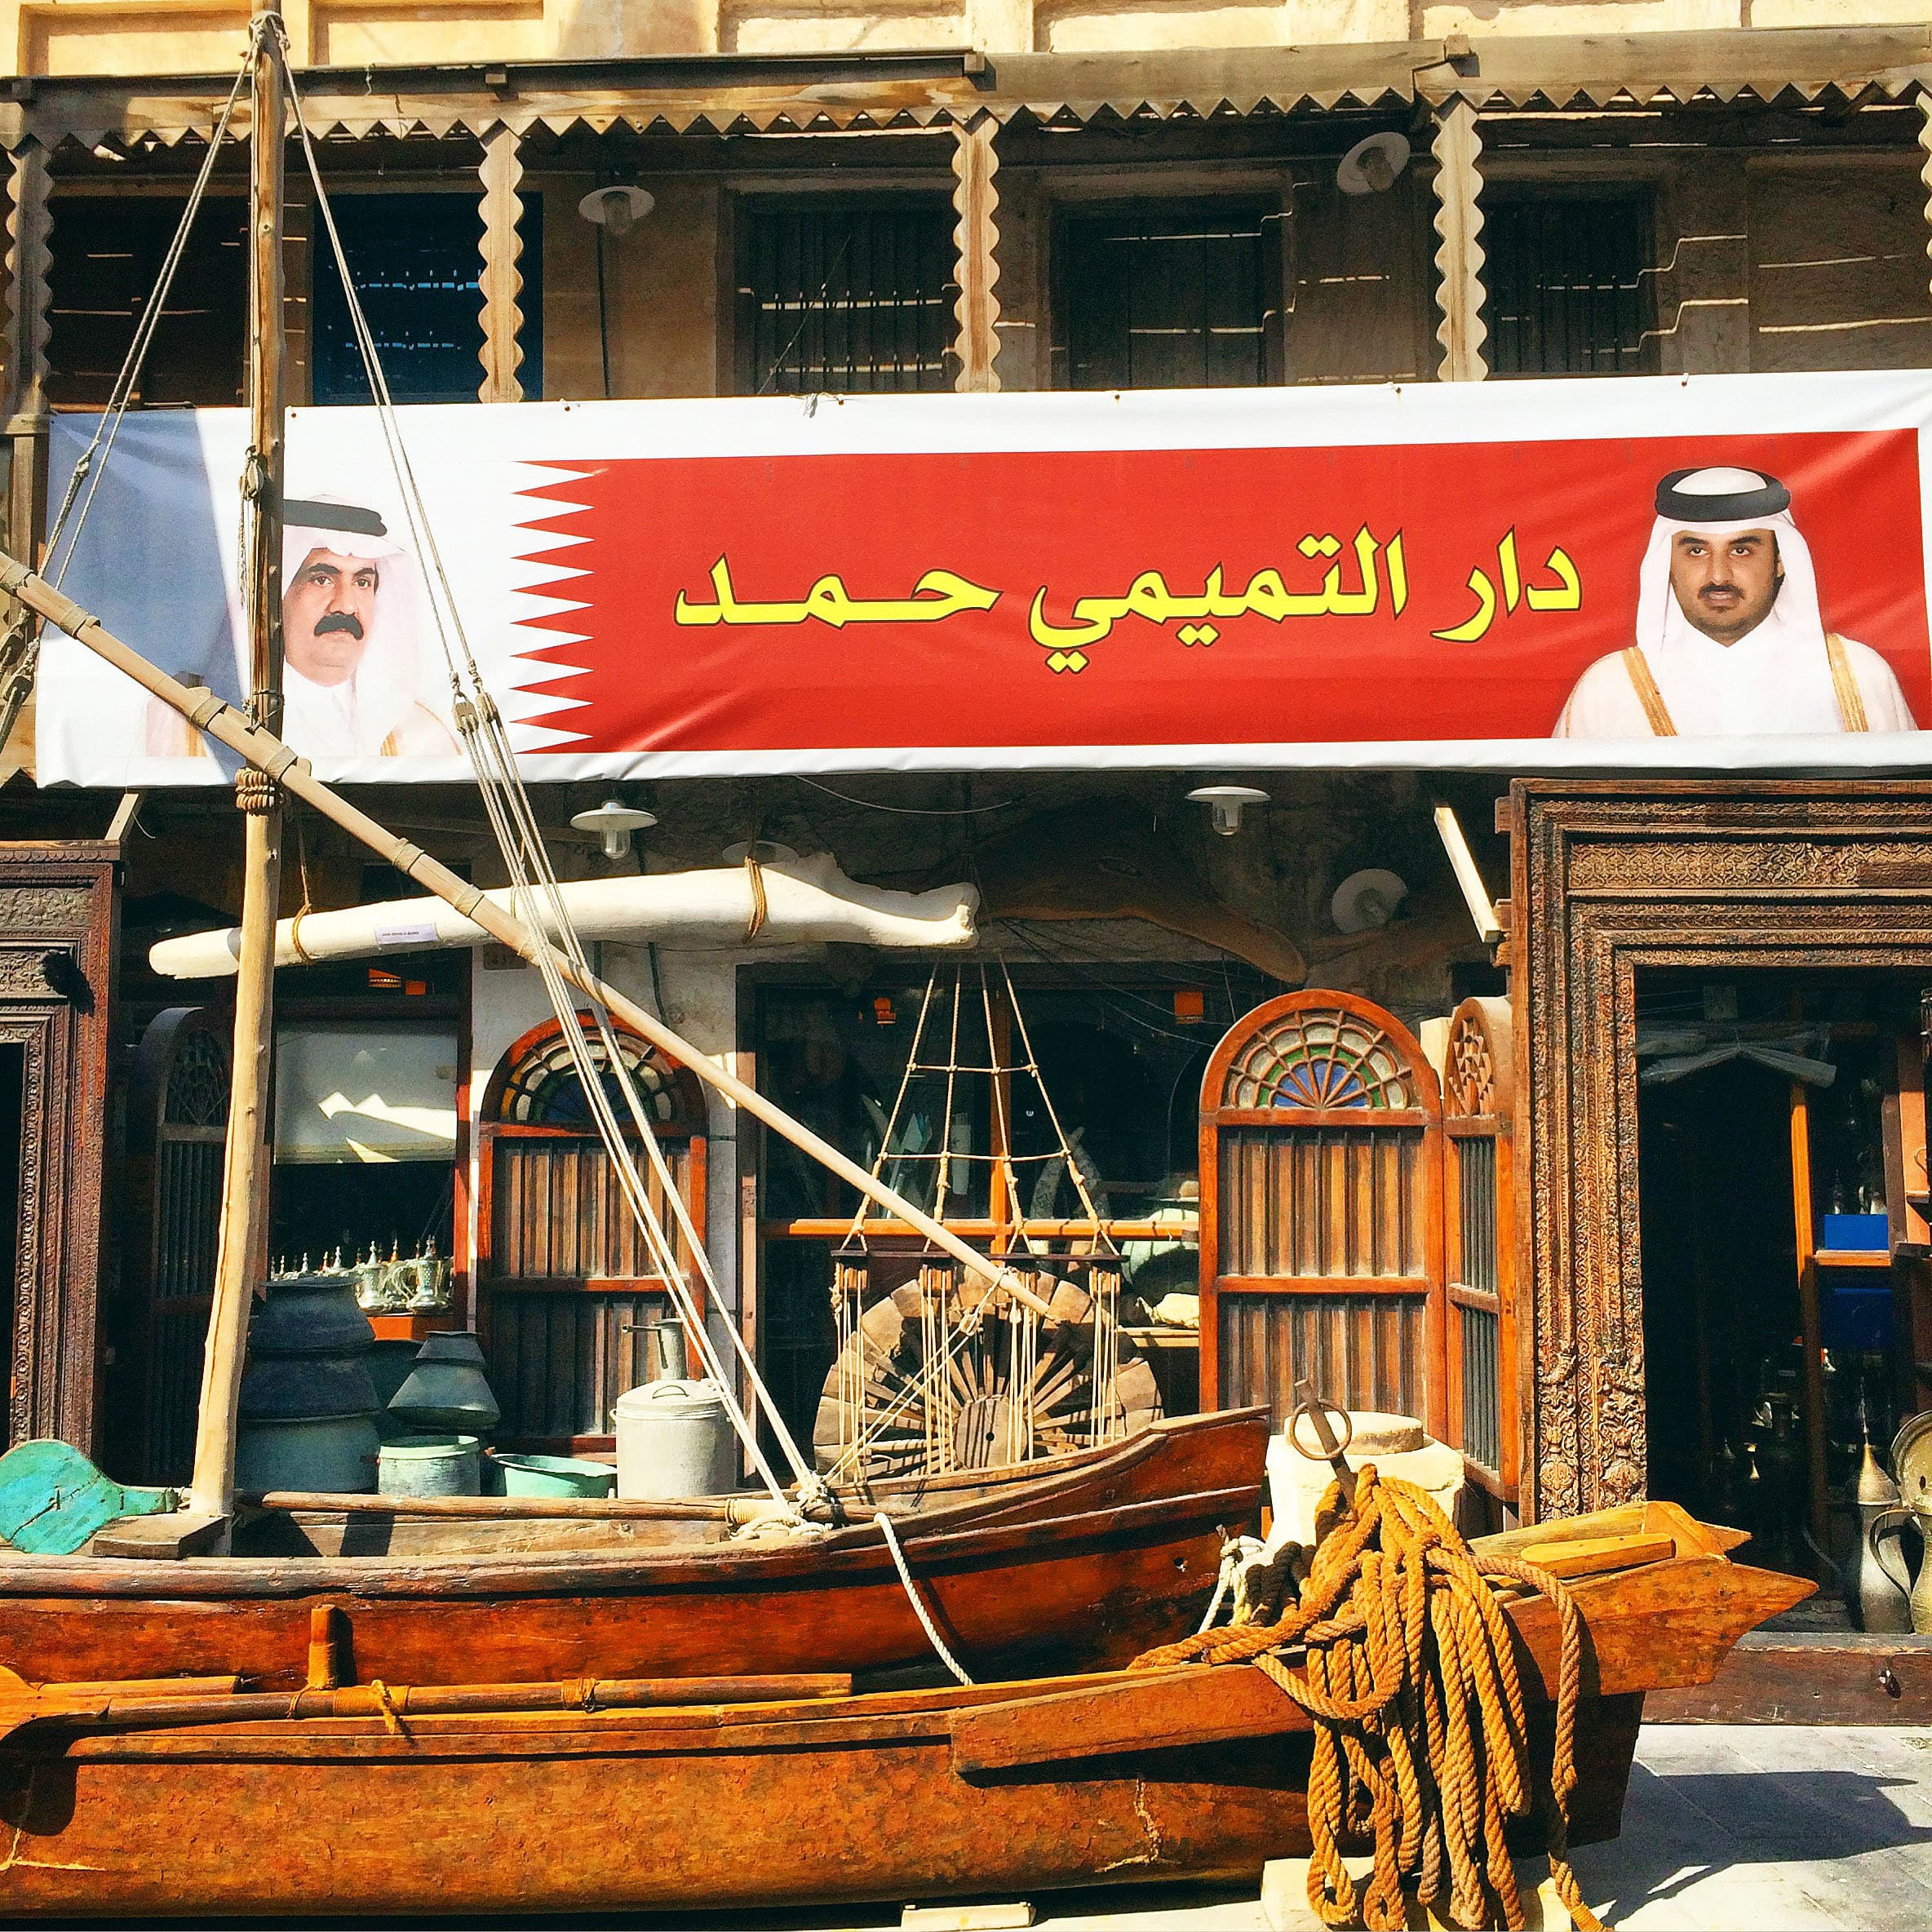 Like most Gulf Monarchies, portraits of the local Royal family can be seen in most parts of the country.